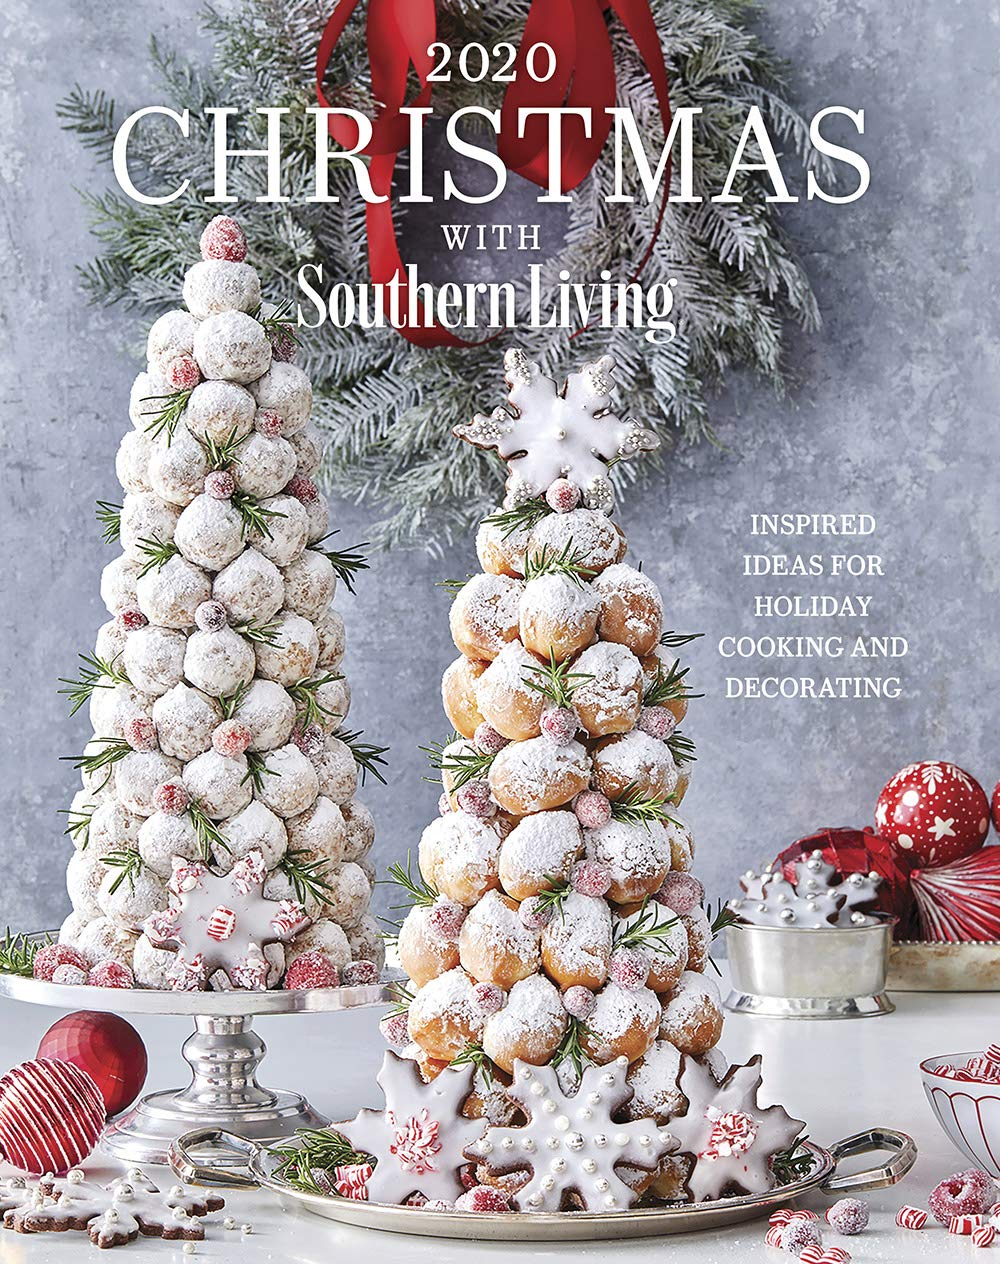 Christmas 2020 2020 Christmas with Southern Living: Inspired Ideas for Holiday